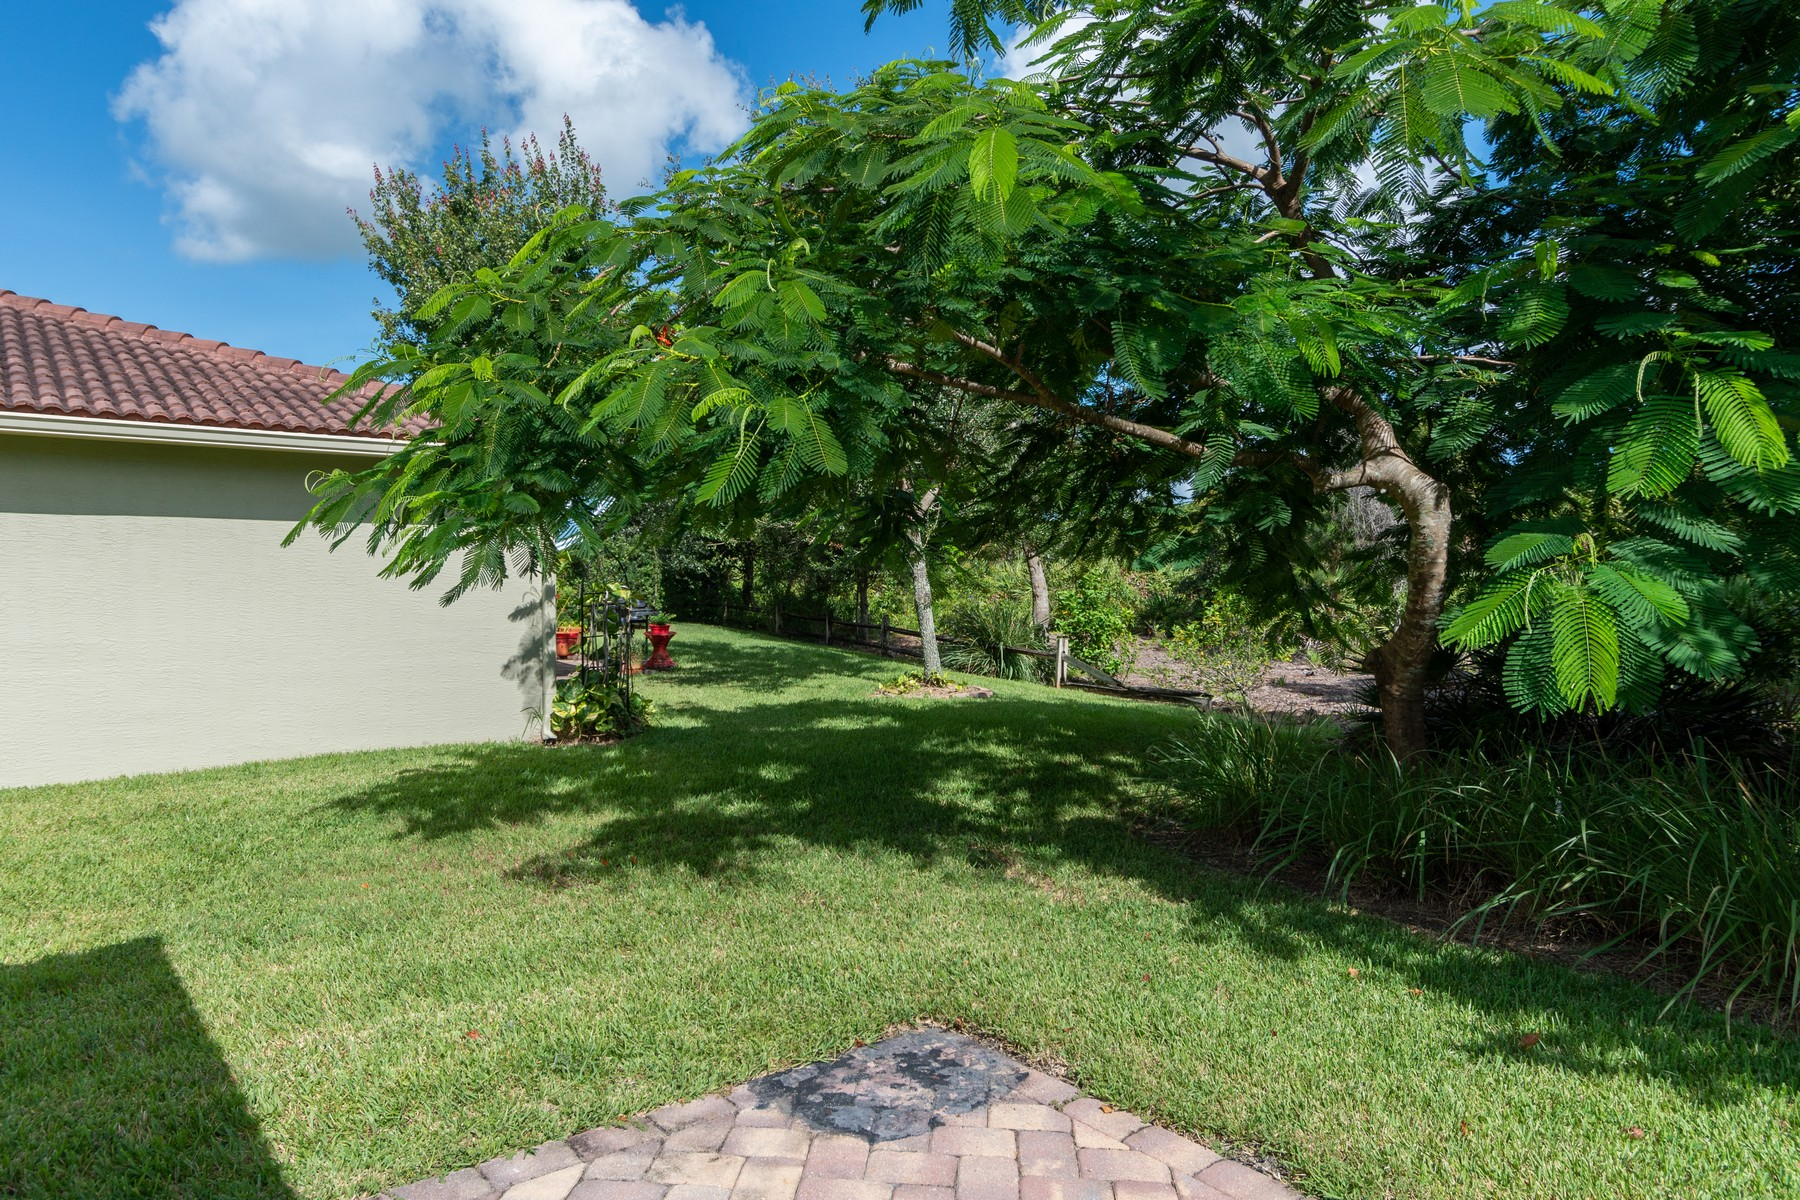 Additional photo for property listing at Verolago Three Bedroom Home 4248 56th Lane Vero Beach, Florida 32967 United States